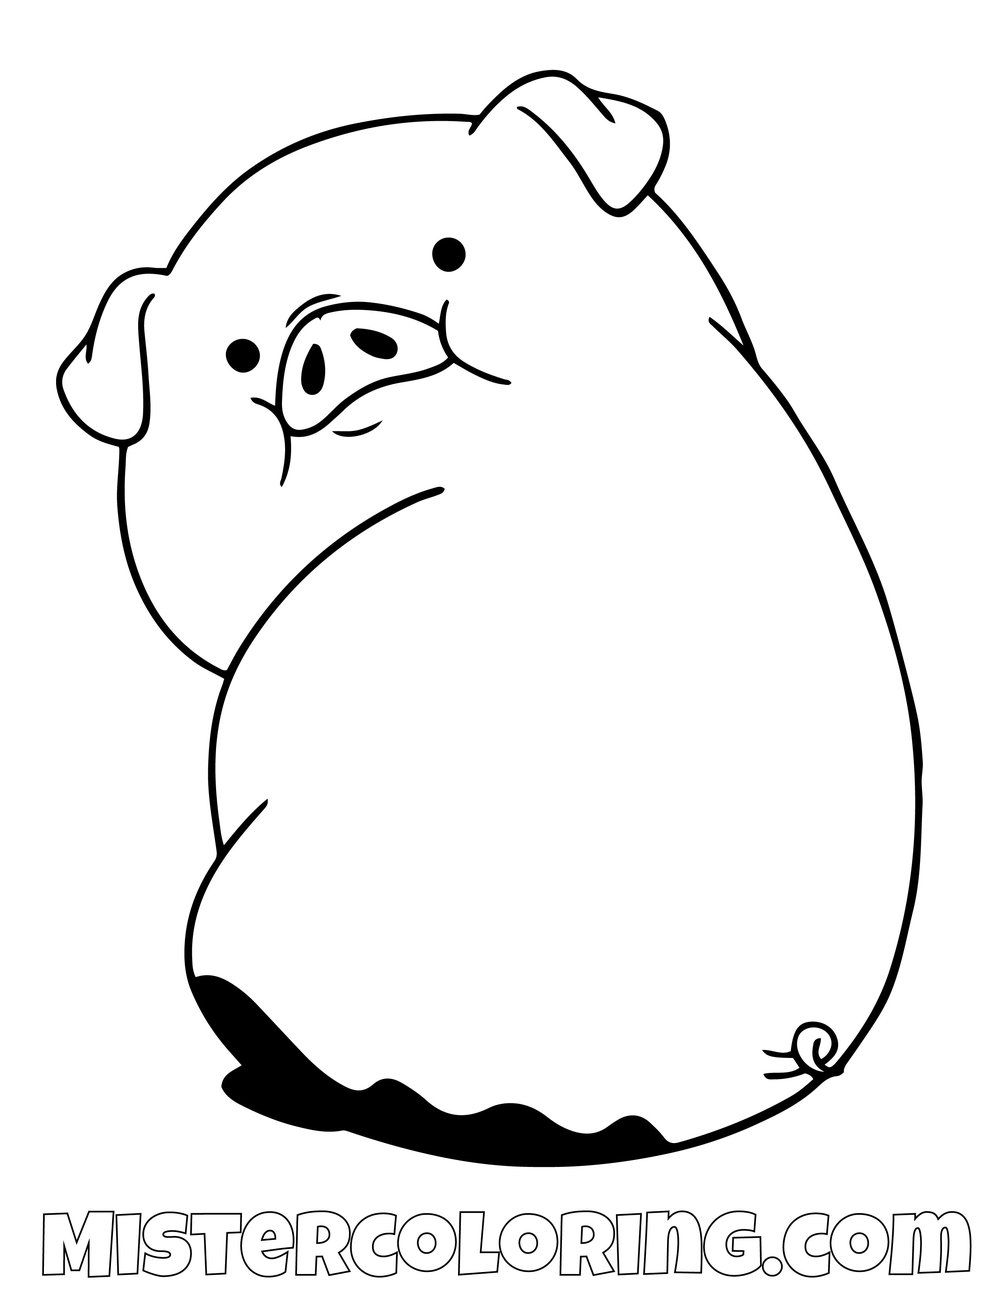 Waddles In Mud Gravity Falls Coloring Pages For Kids Fall Coloring Pages Fall Drawings Cartoon Girl Drawing